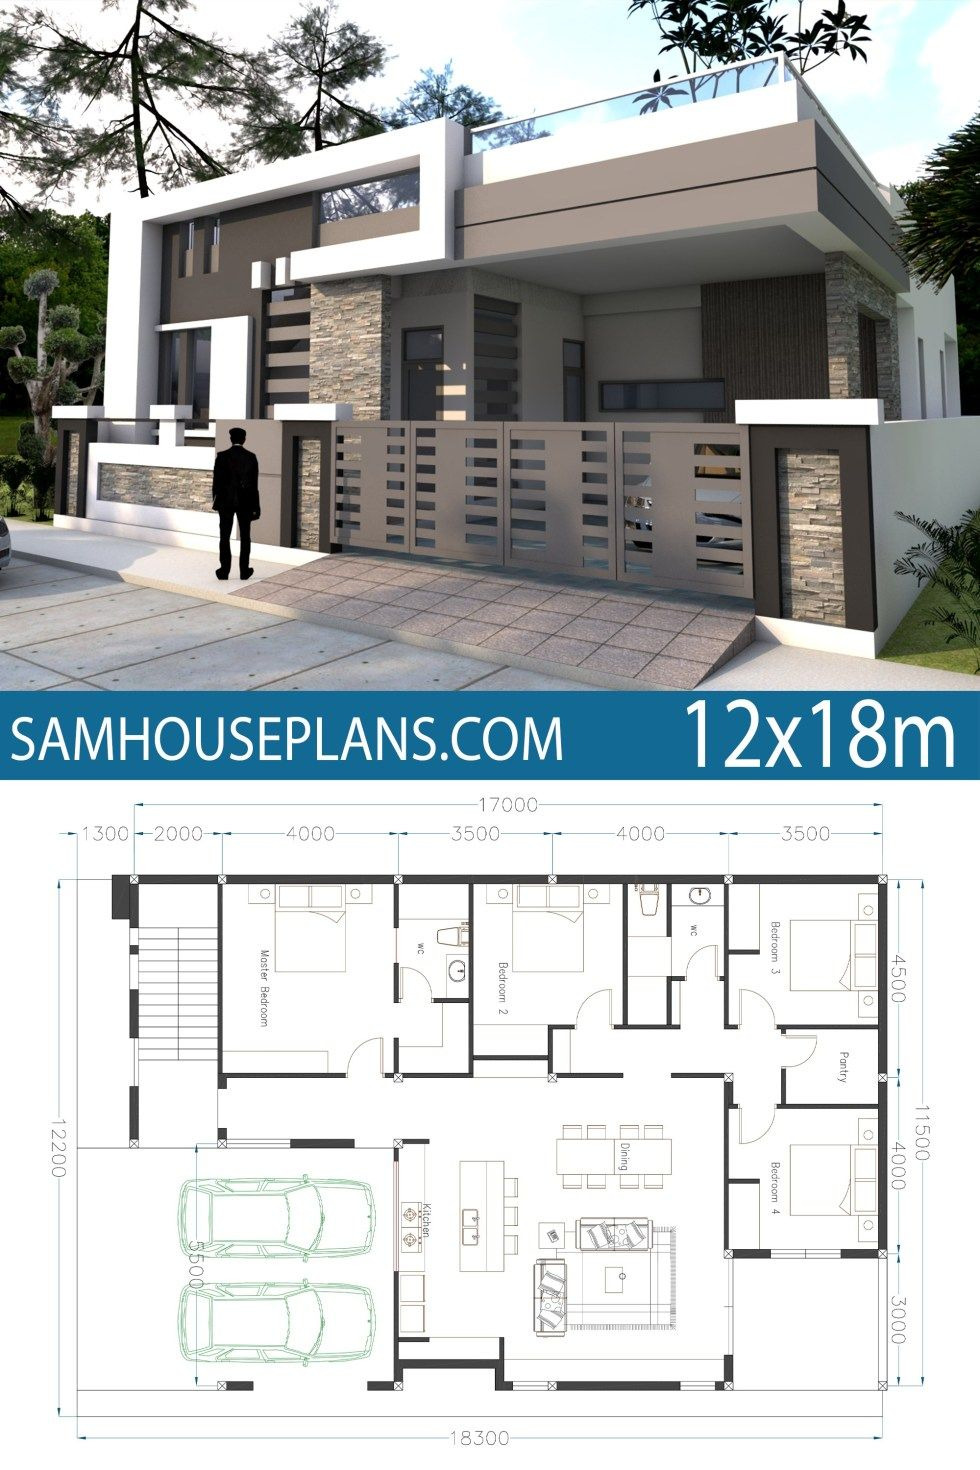 One Story Contemporary Home Plans Unique Home Design 40x60f with 4 Bedrooms